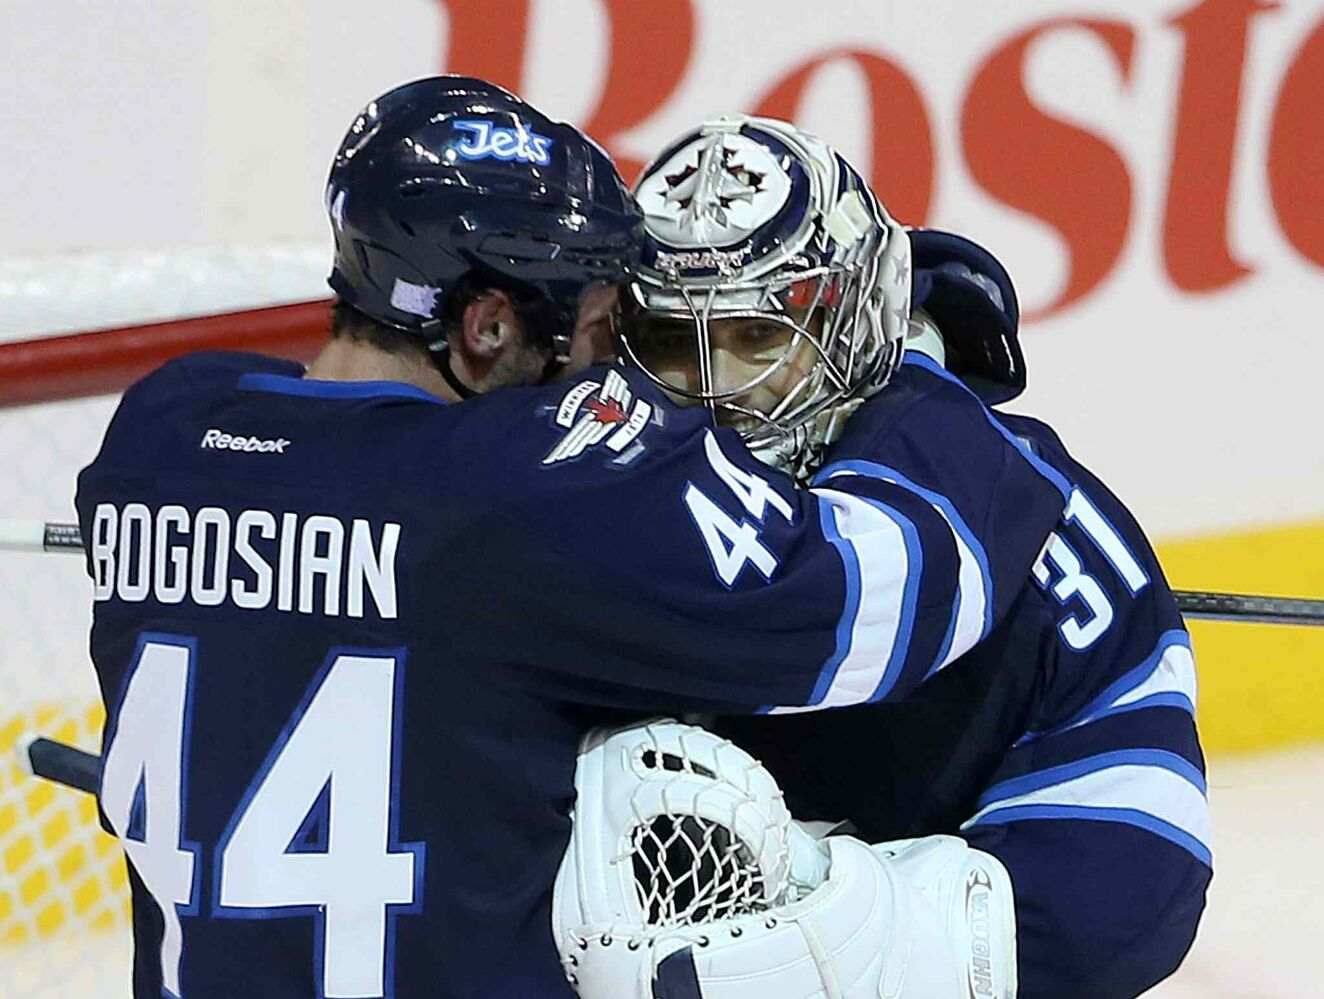 Zach Bogosian (left) celebrates with Ondrej Pavelec after the shootout.